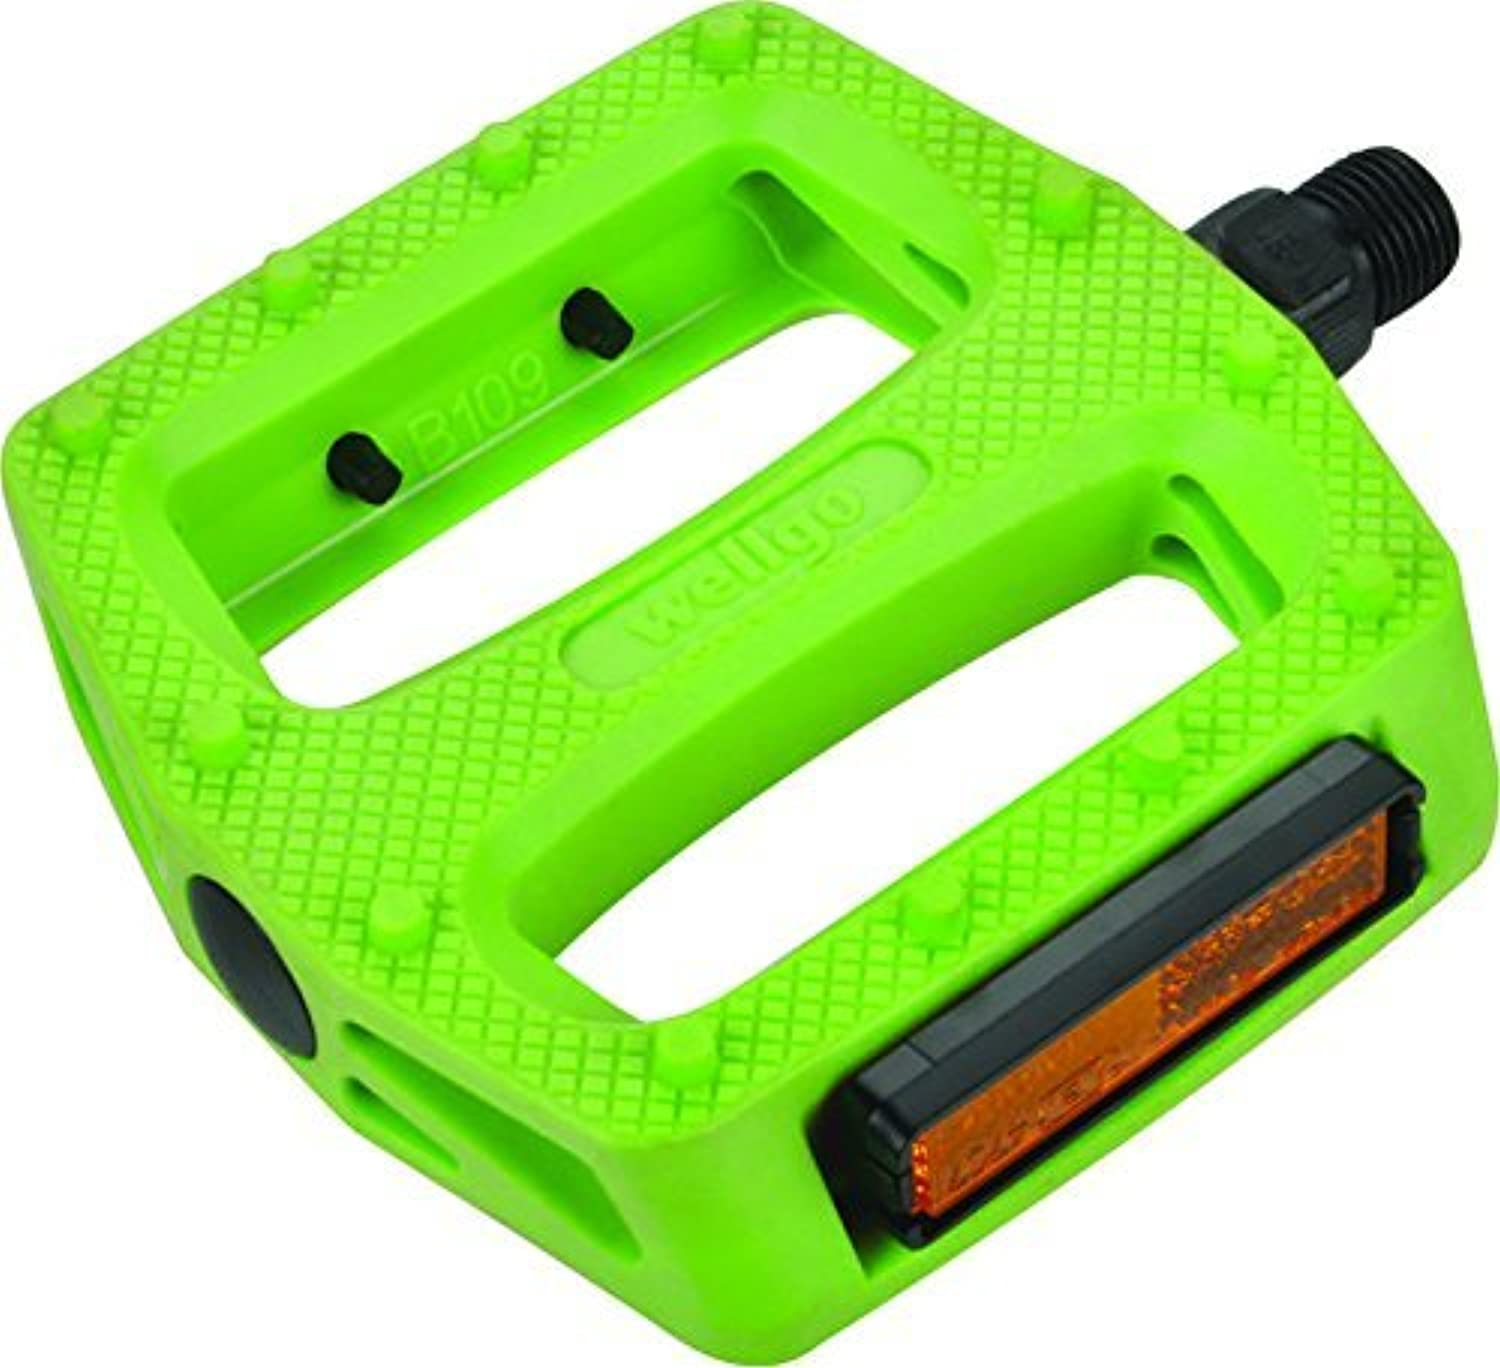 Curb Dog Composite Deluxe 9 16 Green Pedal BMX